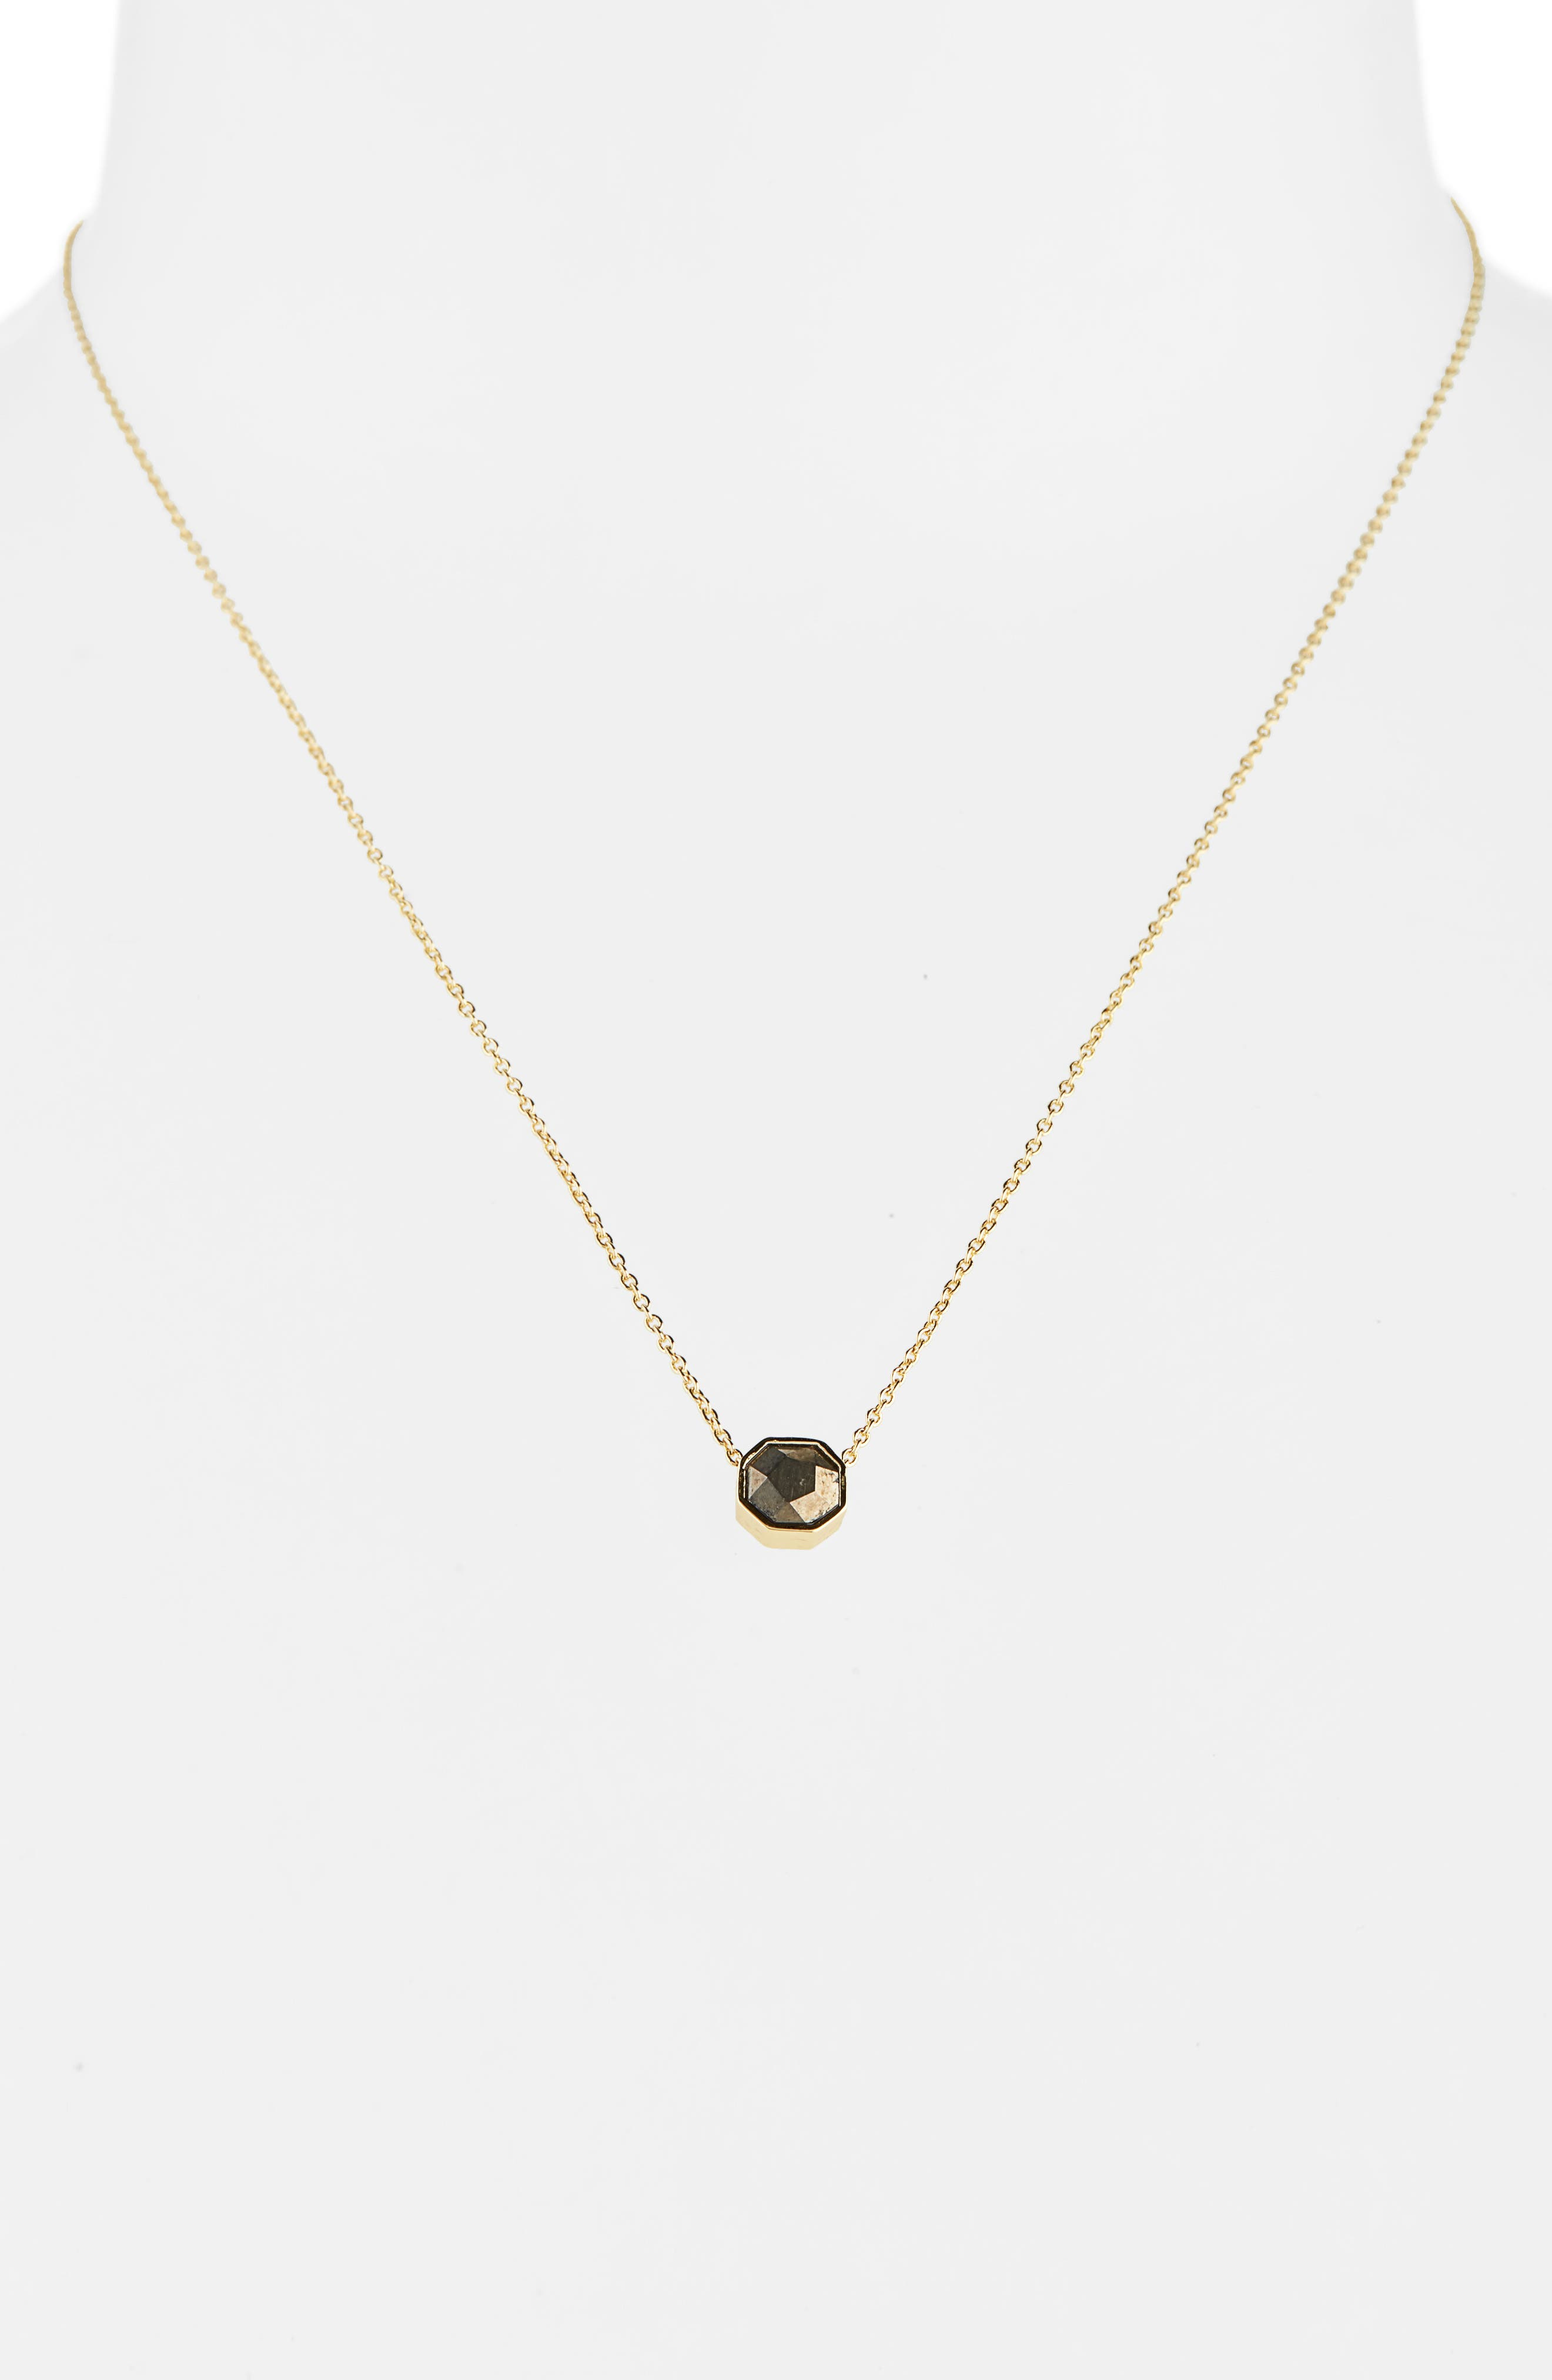 Power Gemstone Charm Adjustable Necklace,                             Main thumbnail 1, color,                             PYRITE/ GOLD